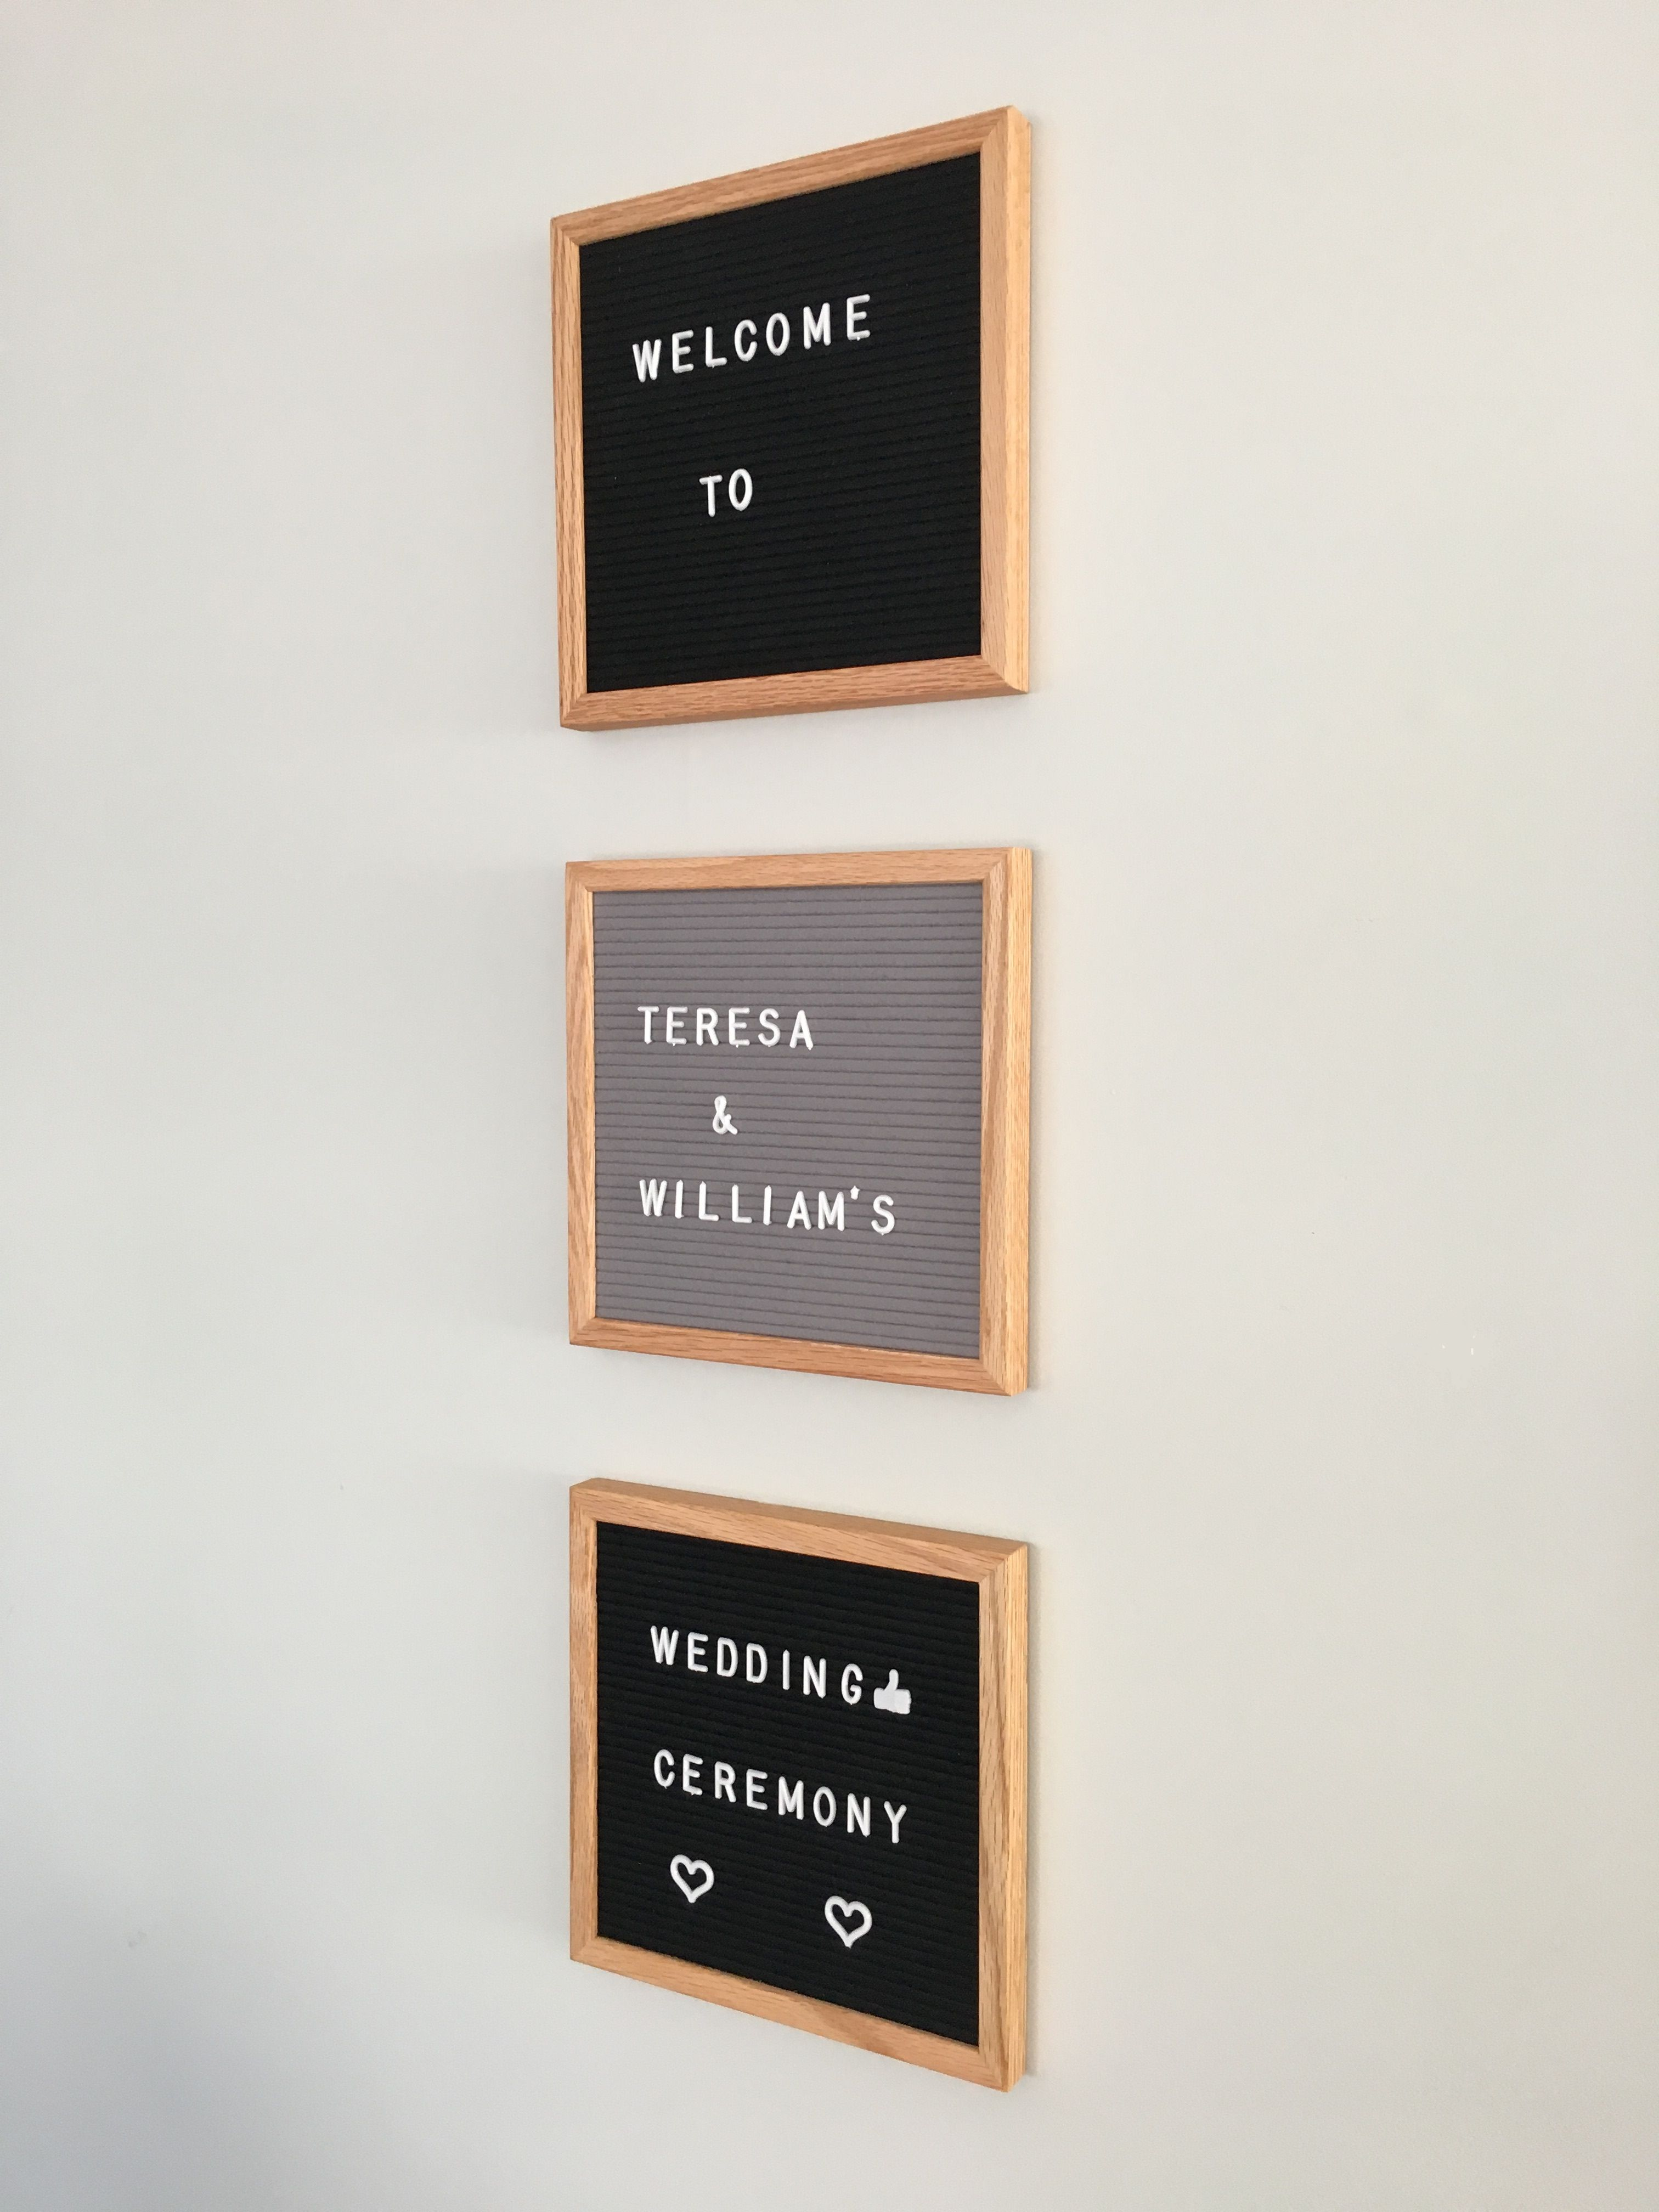 Felt Letter Board 10 By 10 For Wedding Decor Event Planning